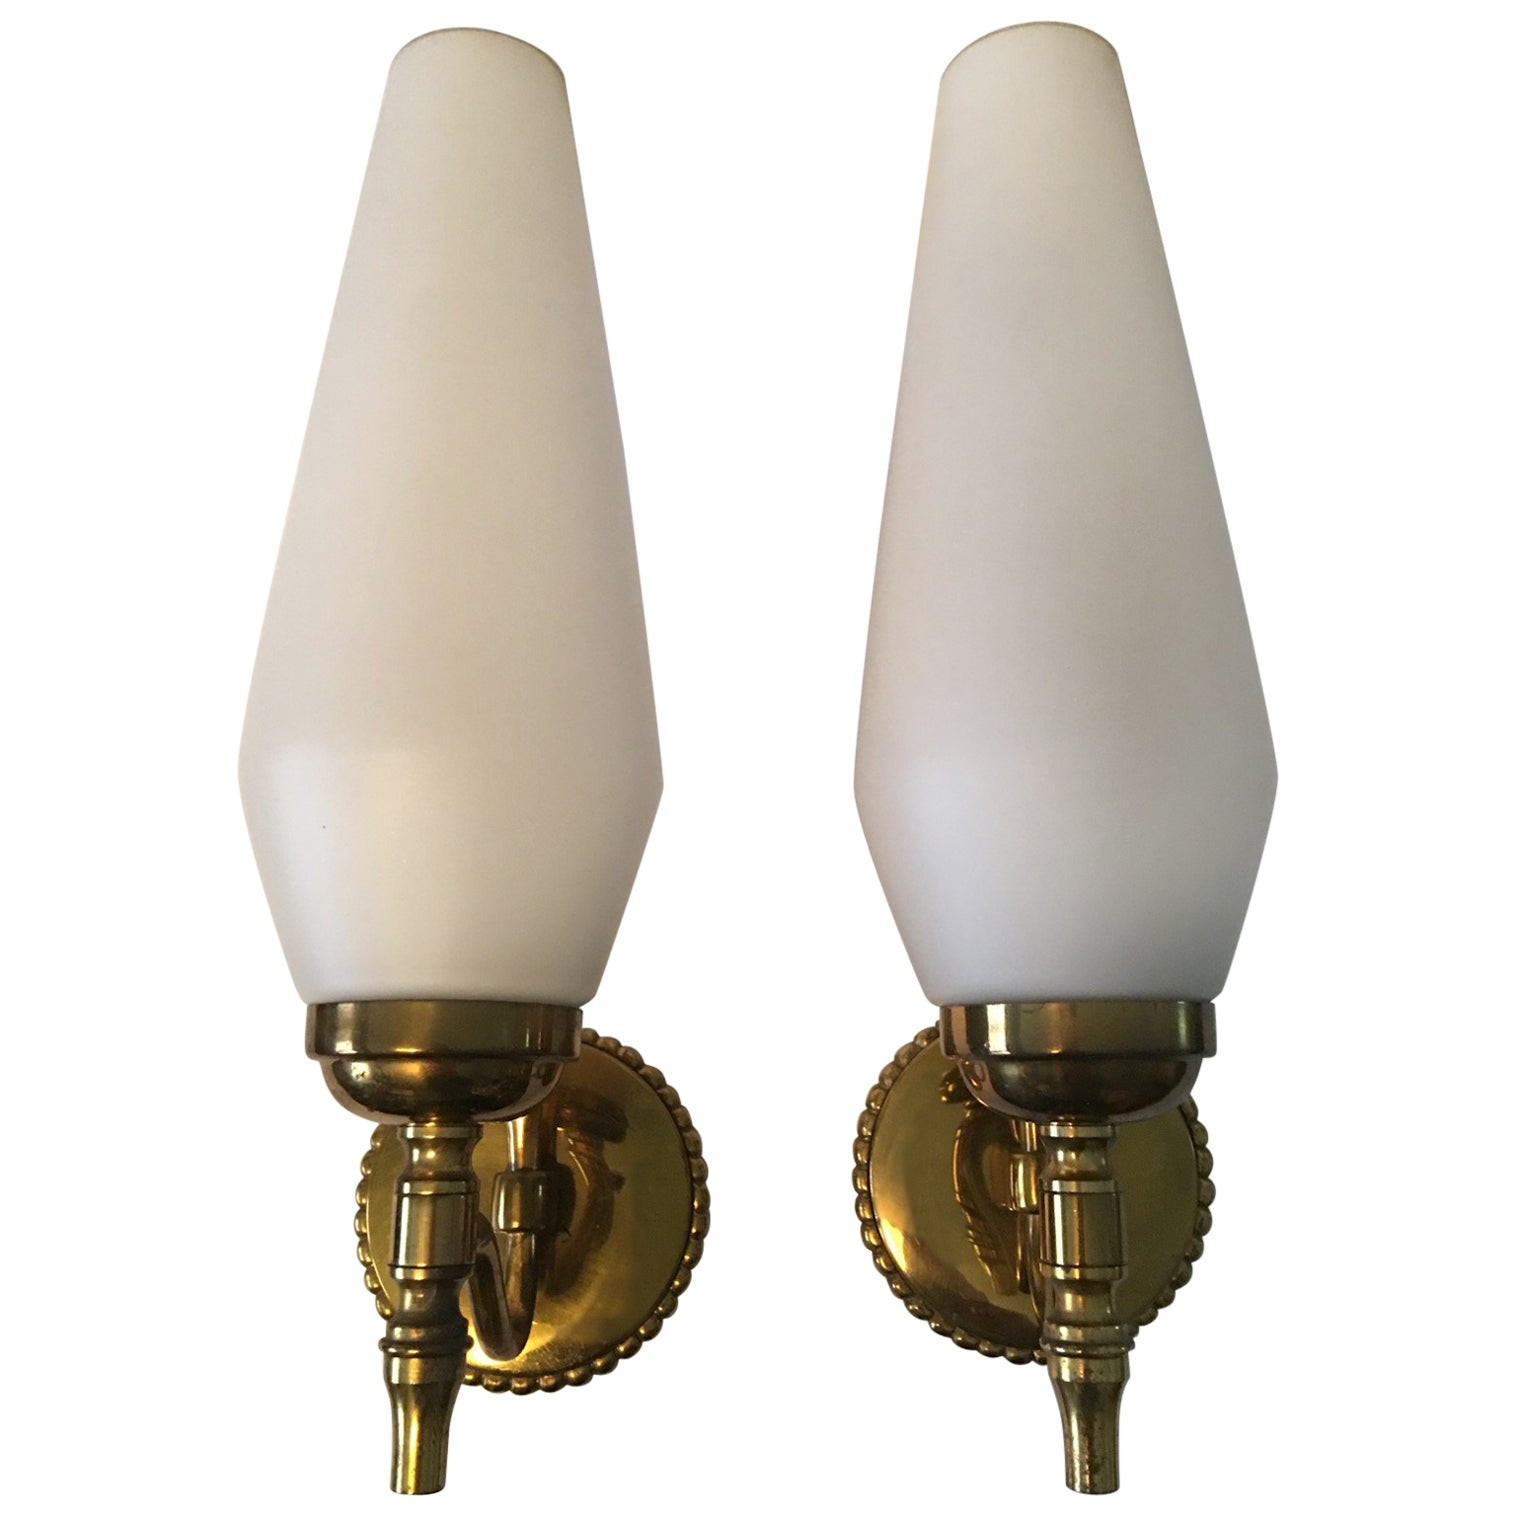 Pair of Lovely Brass and Milk Glass Art Deco Style Sconces